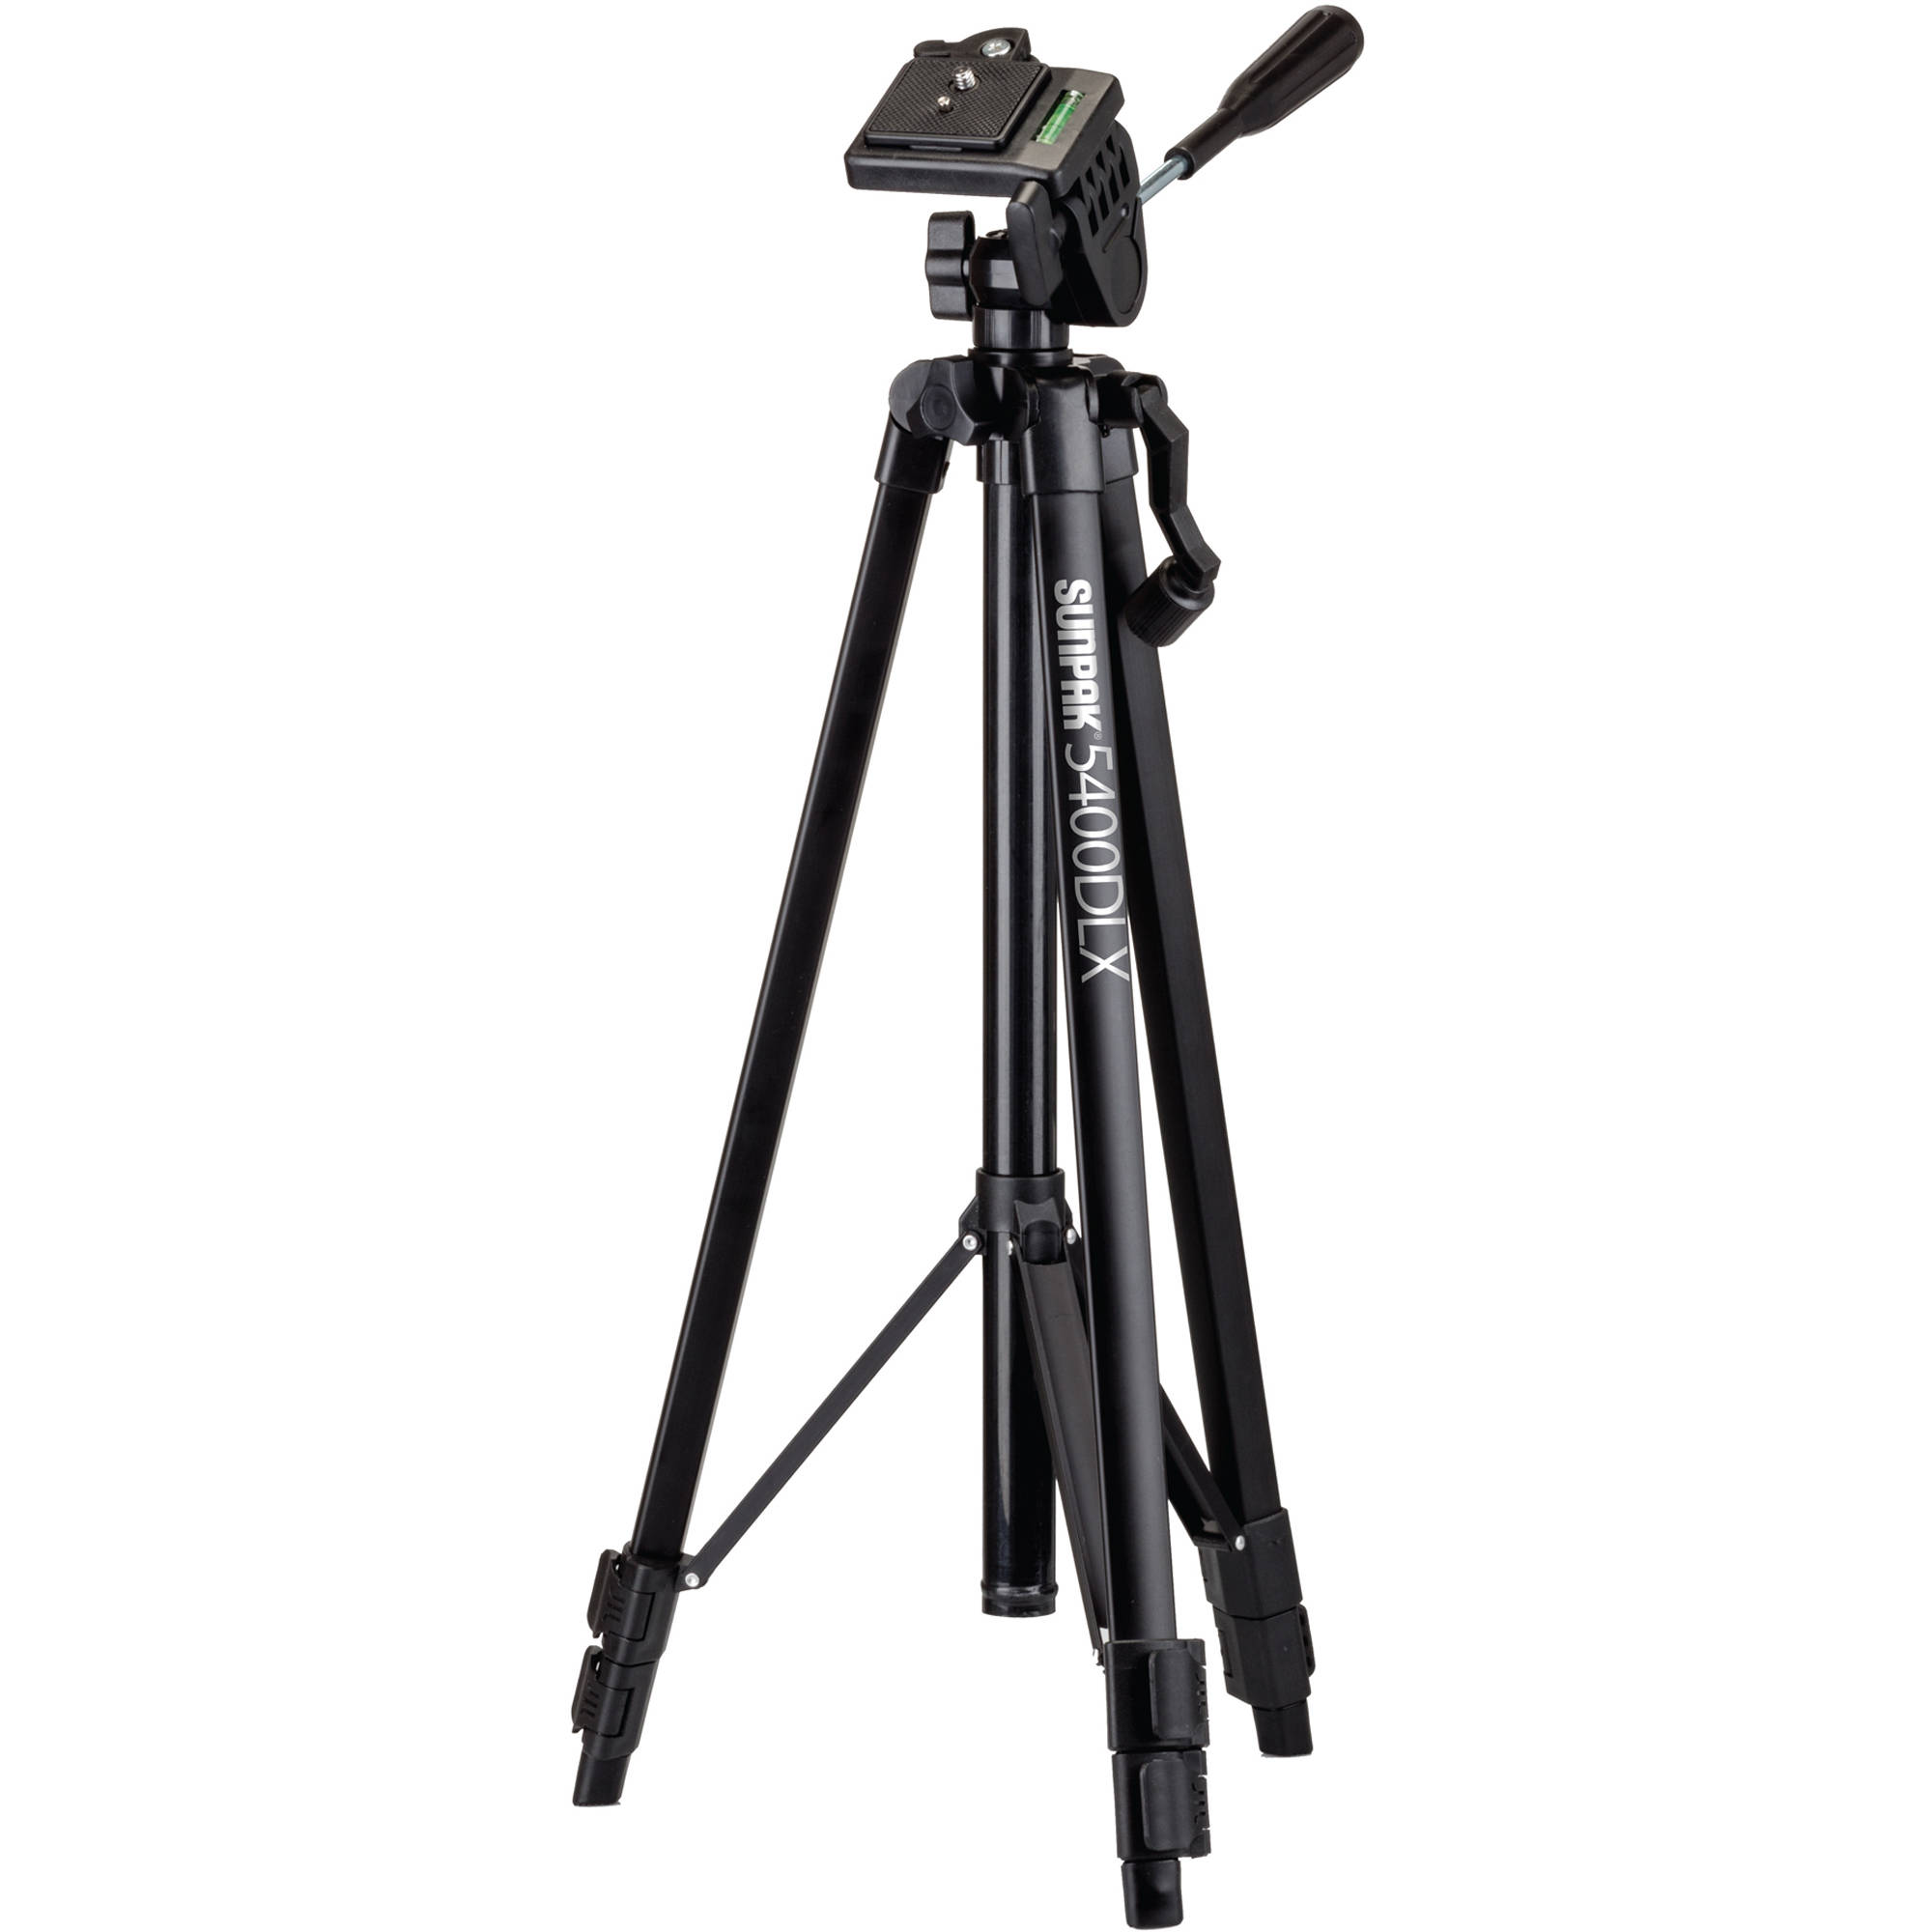 Photography Tripods Support Bh Photo Video Fotopro X Go Plus Sunpak 5400dlx Tripod With 3 Way Pan And Tilt Head Smartphone